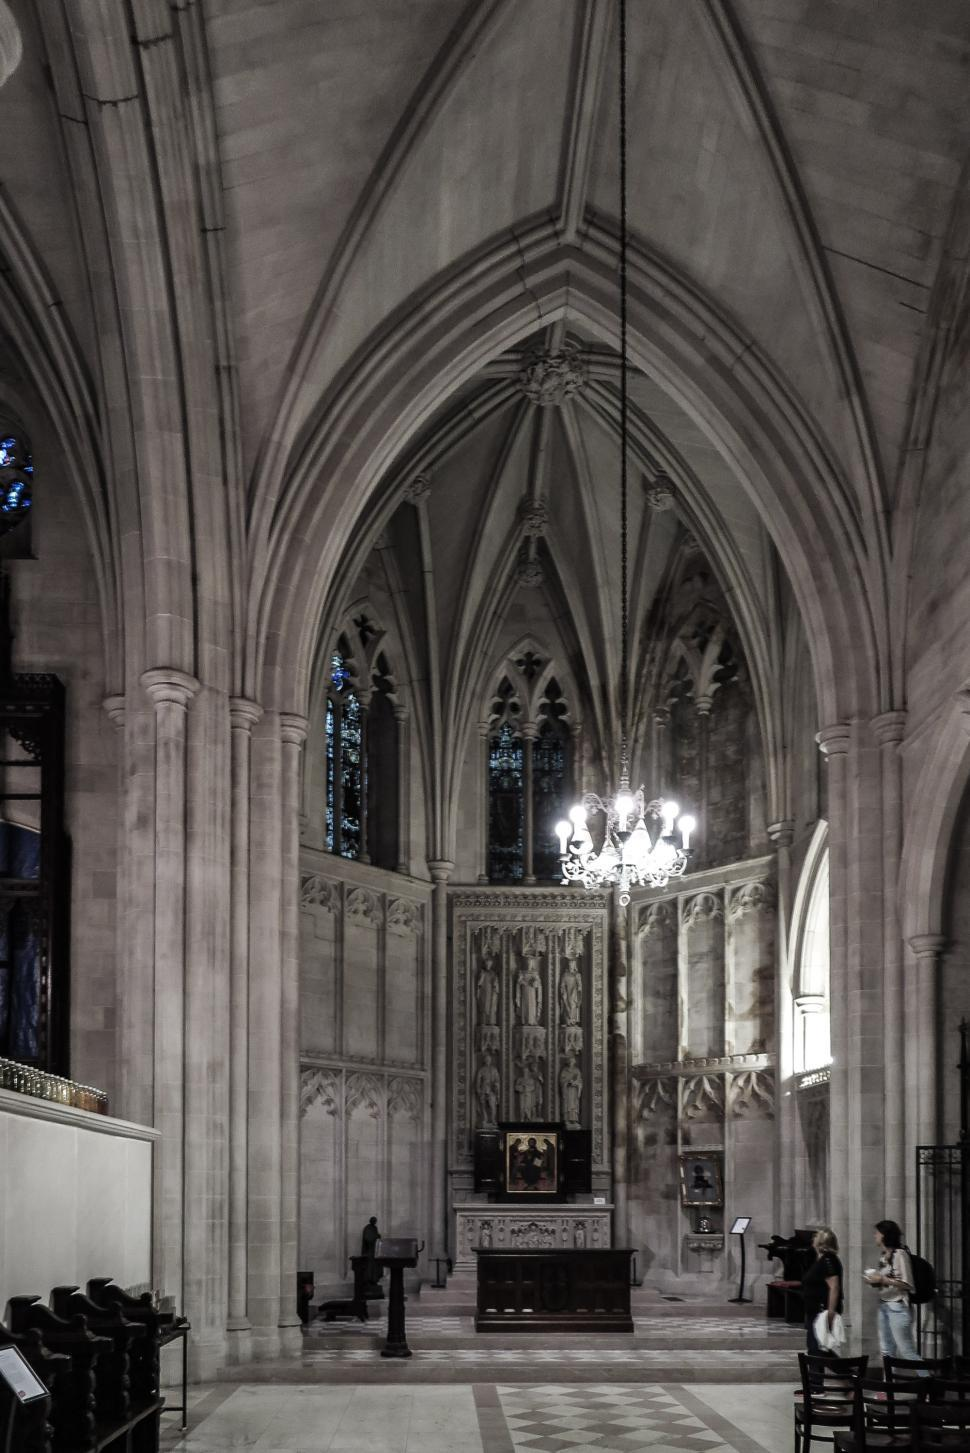 Download Free Stock HD Photo of Gothic cathedral interior Online